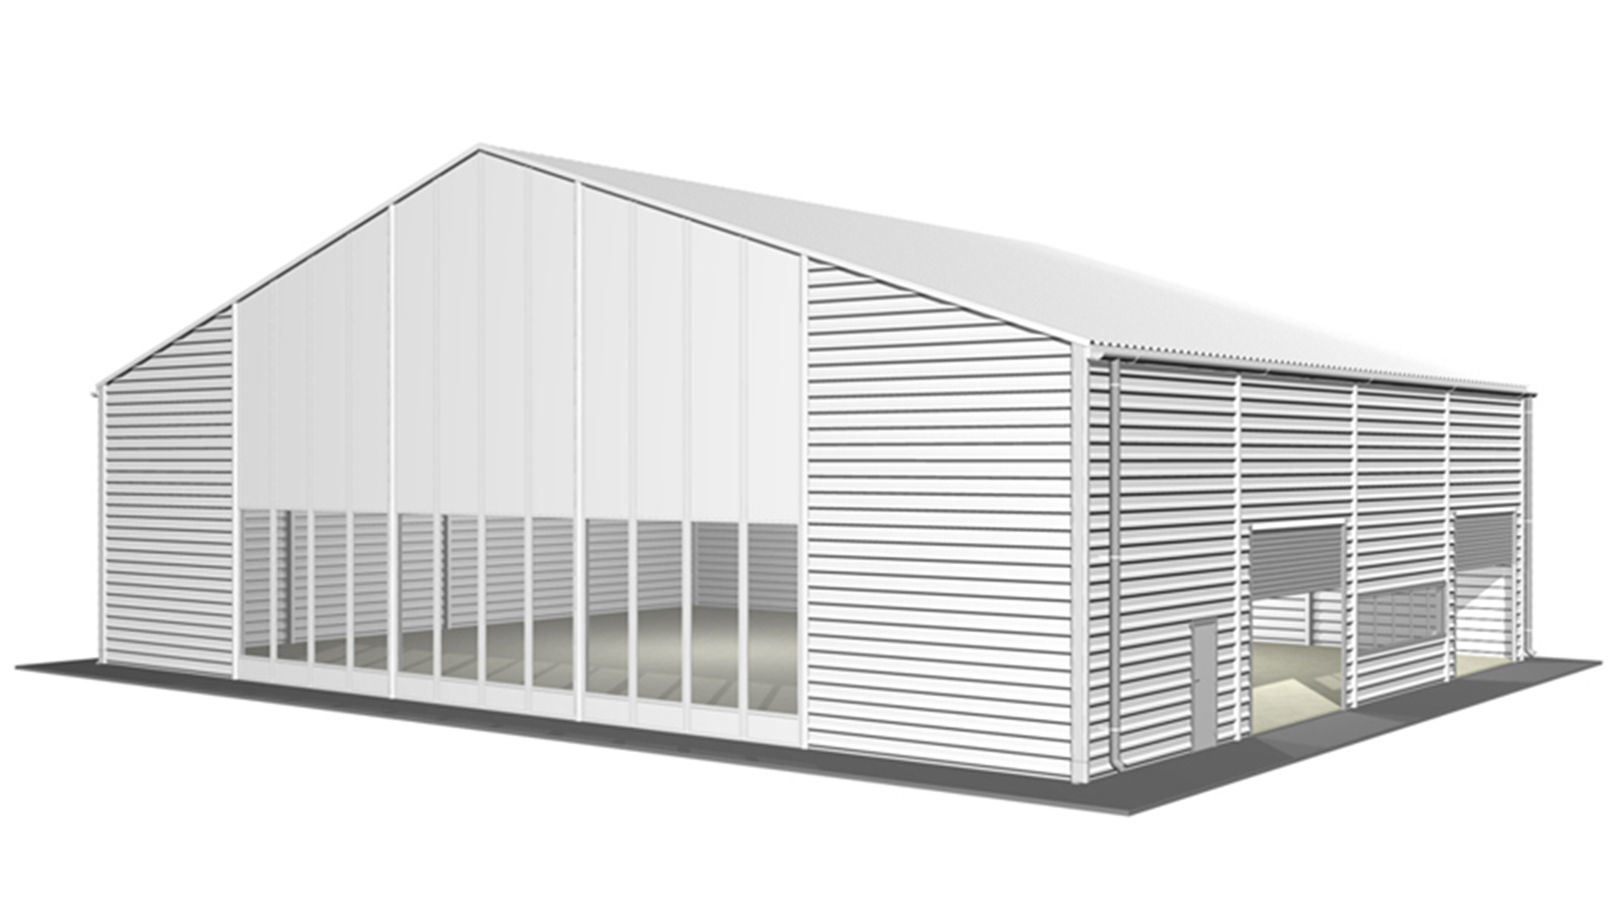 China steel warehouse shed ss 17 photos pictures for Garden shed builders warehouse